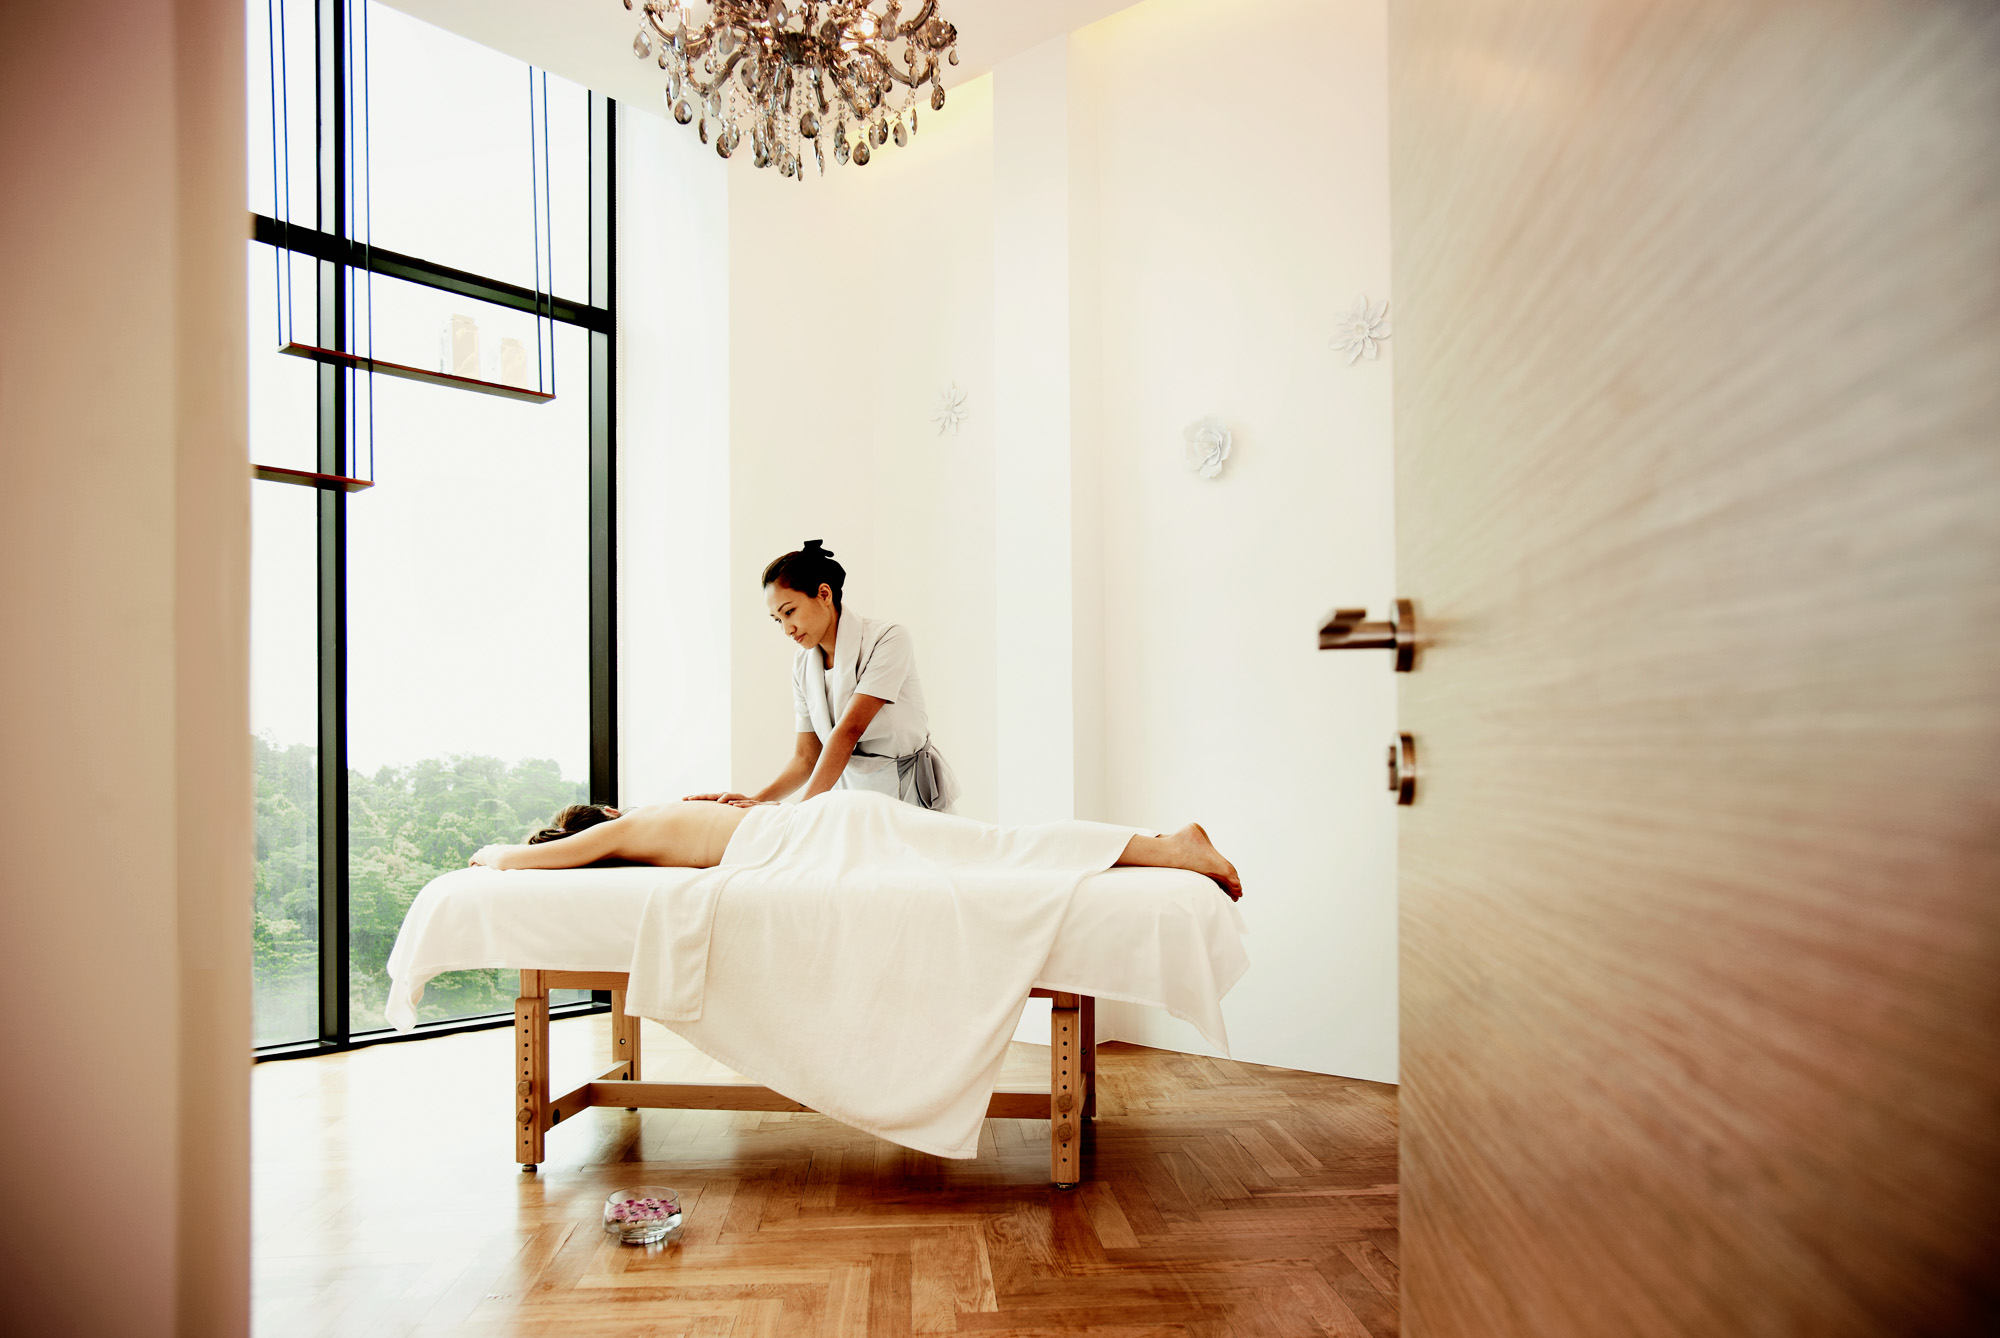 25_RESS_RESS_Be_Spa_Massage_10029.jpg